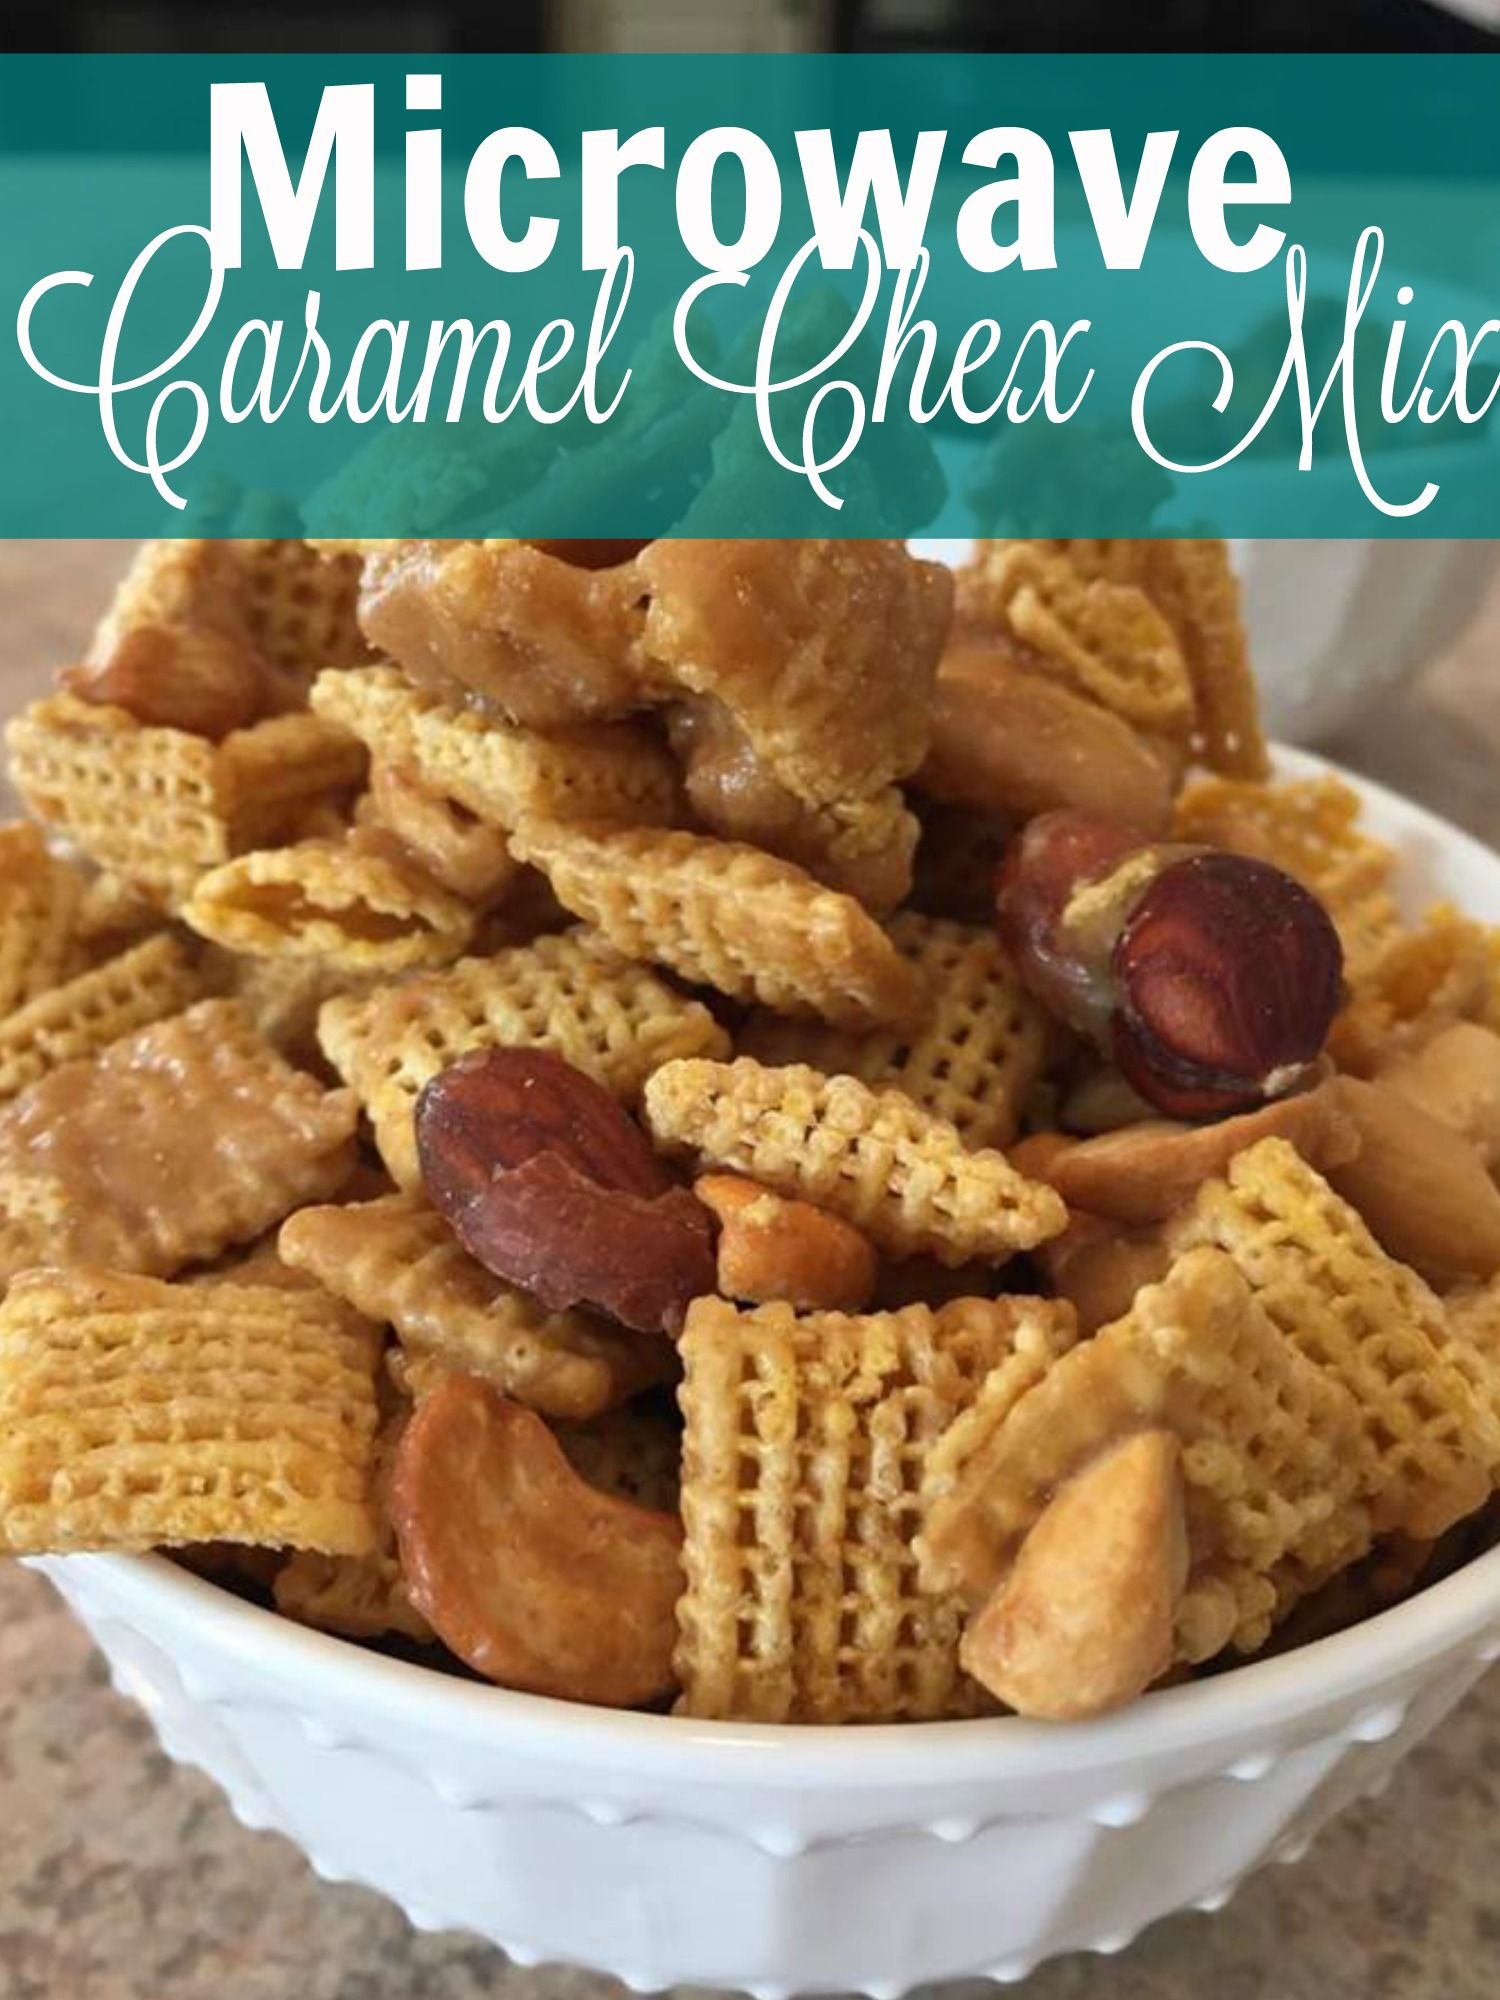 Brown Sugar Is The Star In This Easy Concoction And A Snack For Kids To Make S Love Chex Mix Microwave